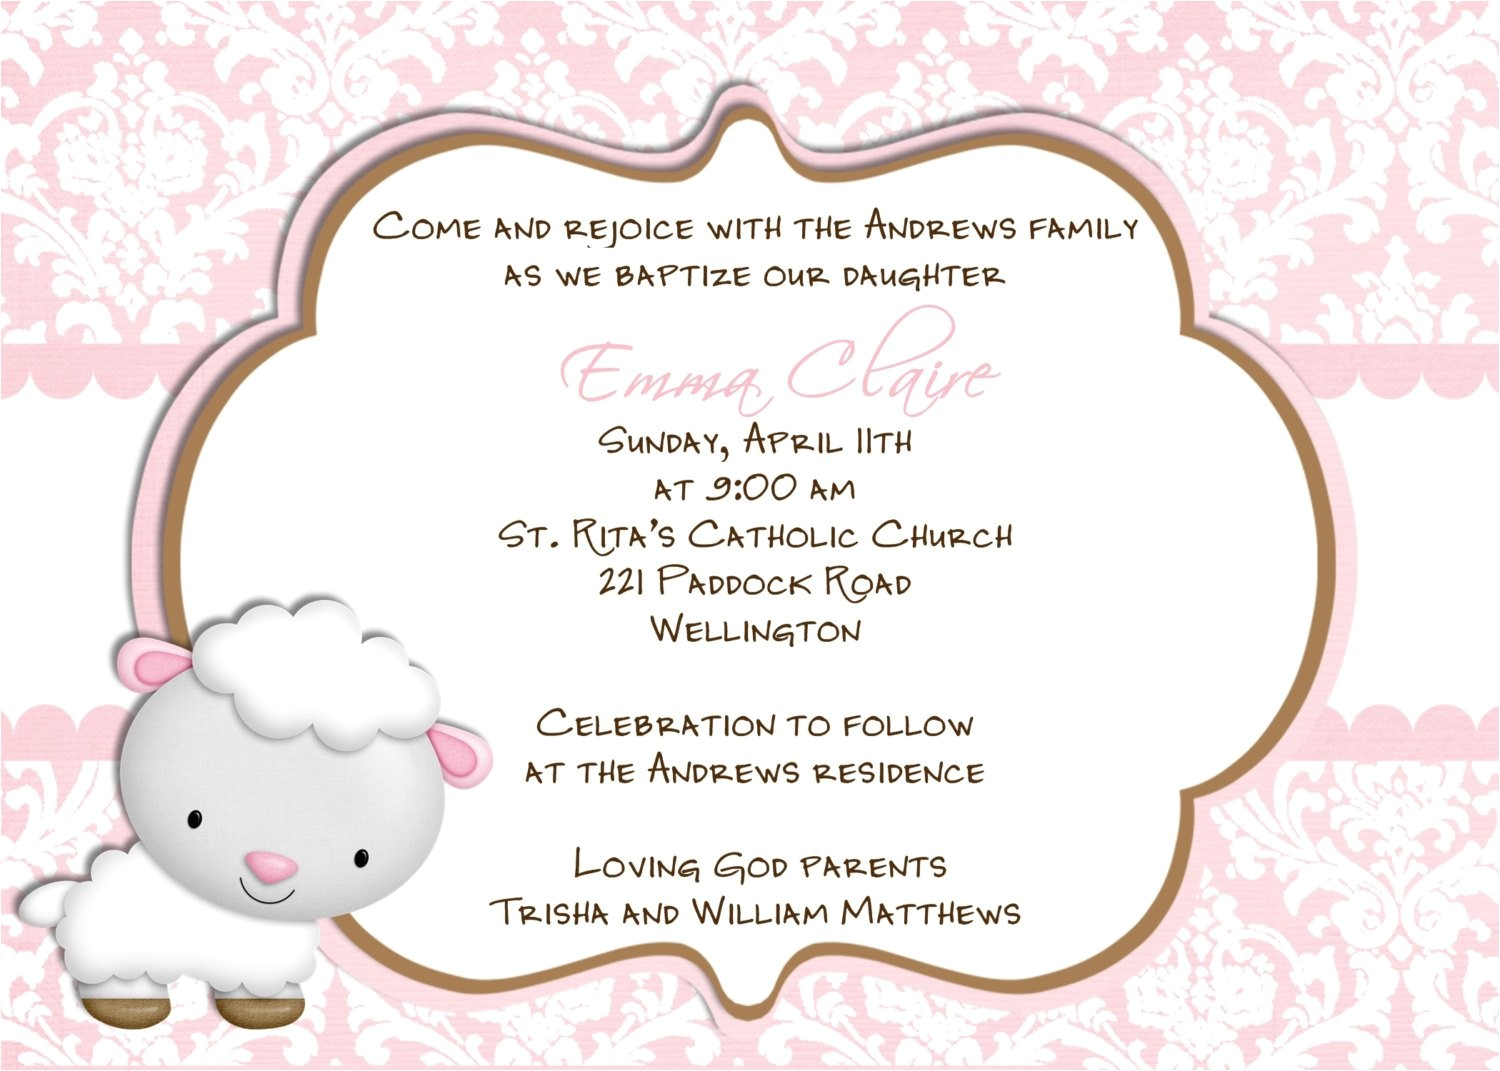 Catholic Baptism Invitations In Spanish Baptism Invitations In Spanish Wording for Baptism